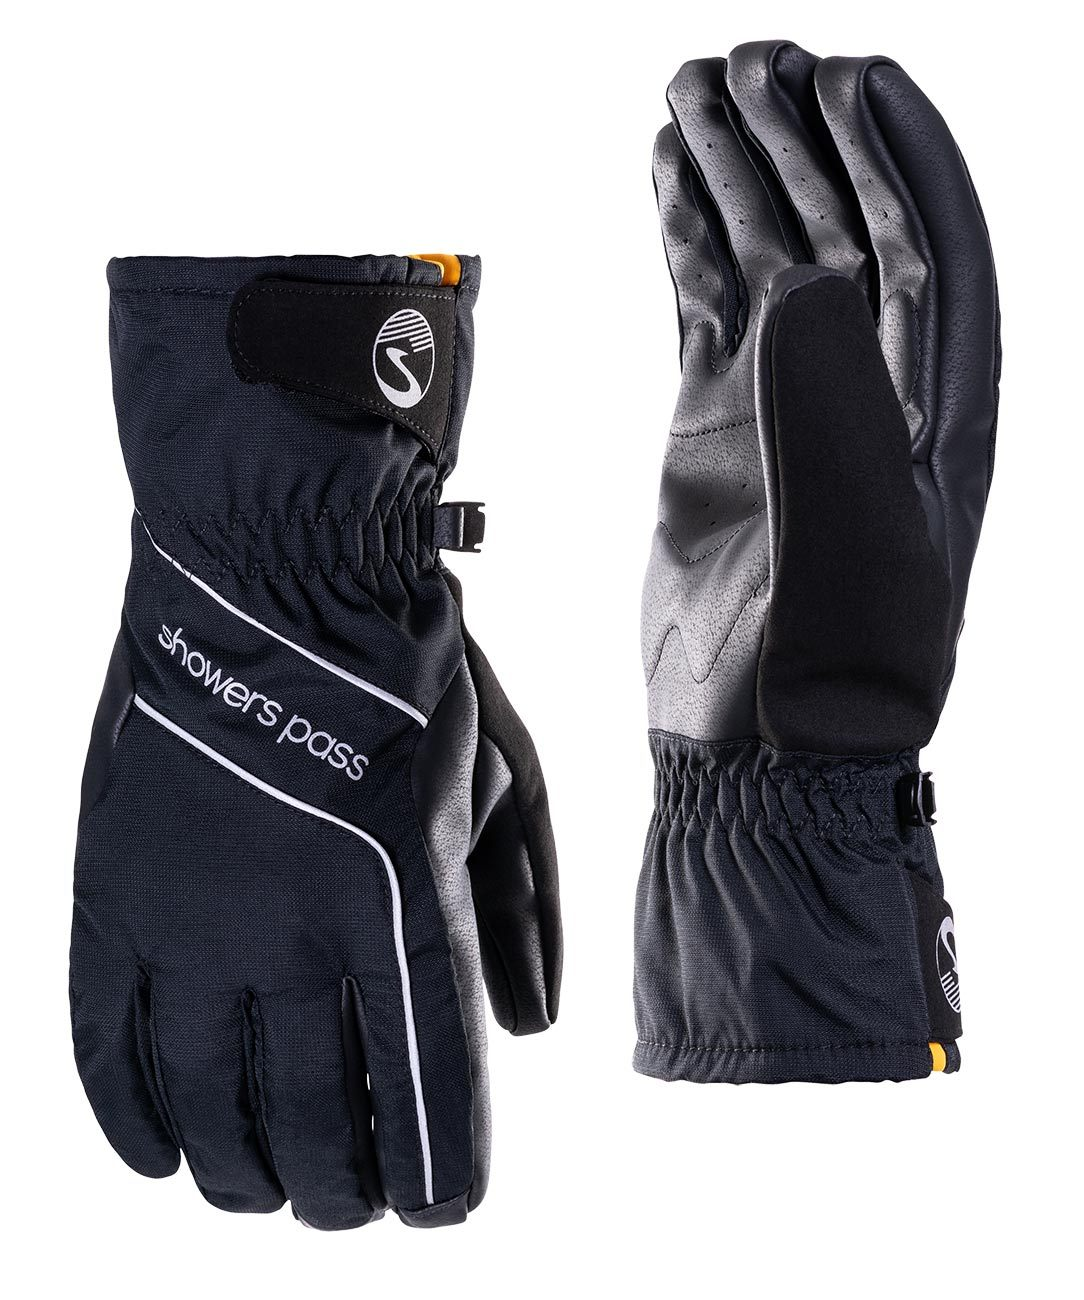 Men's Crosspoint Hardshell Waterproof Glove